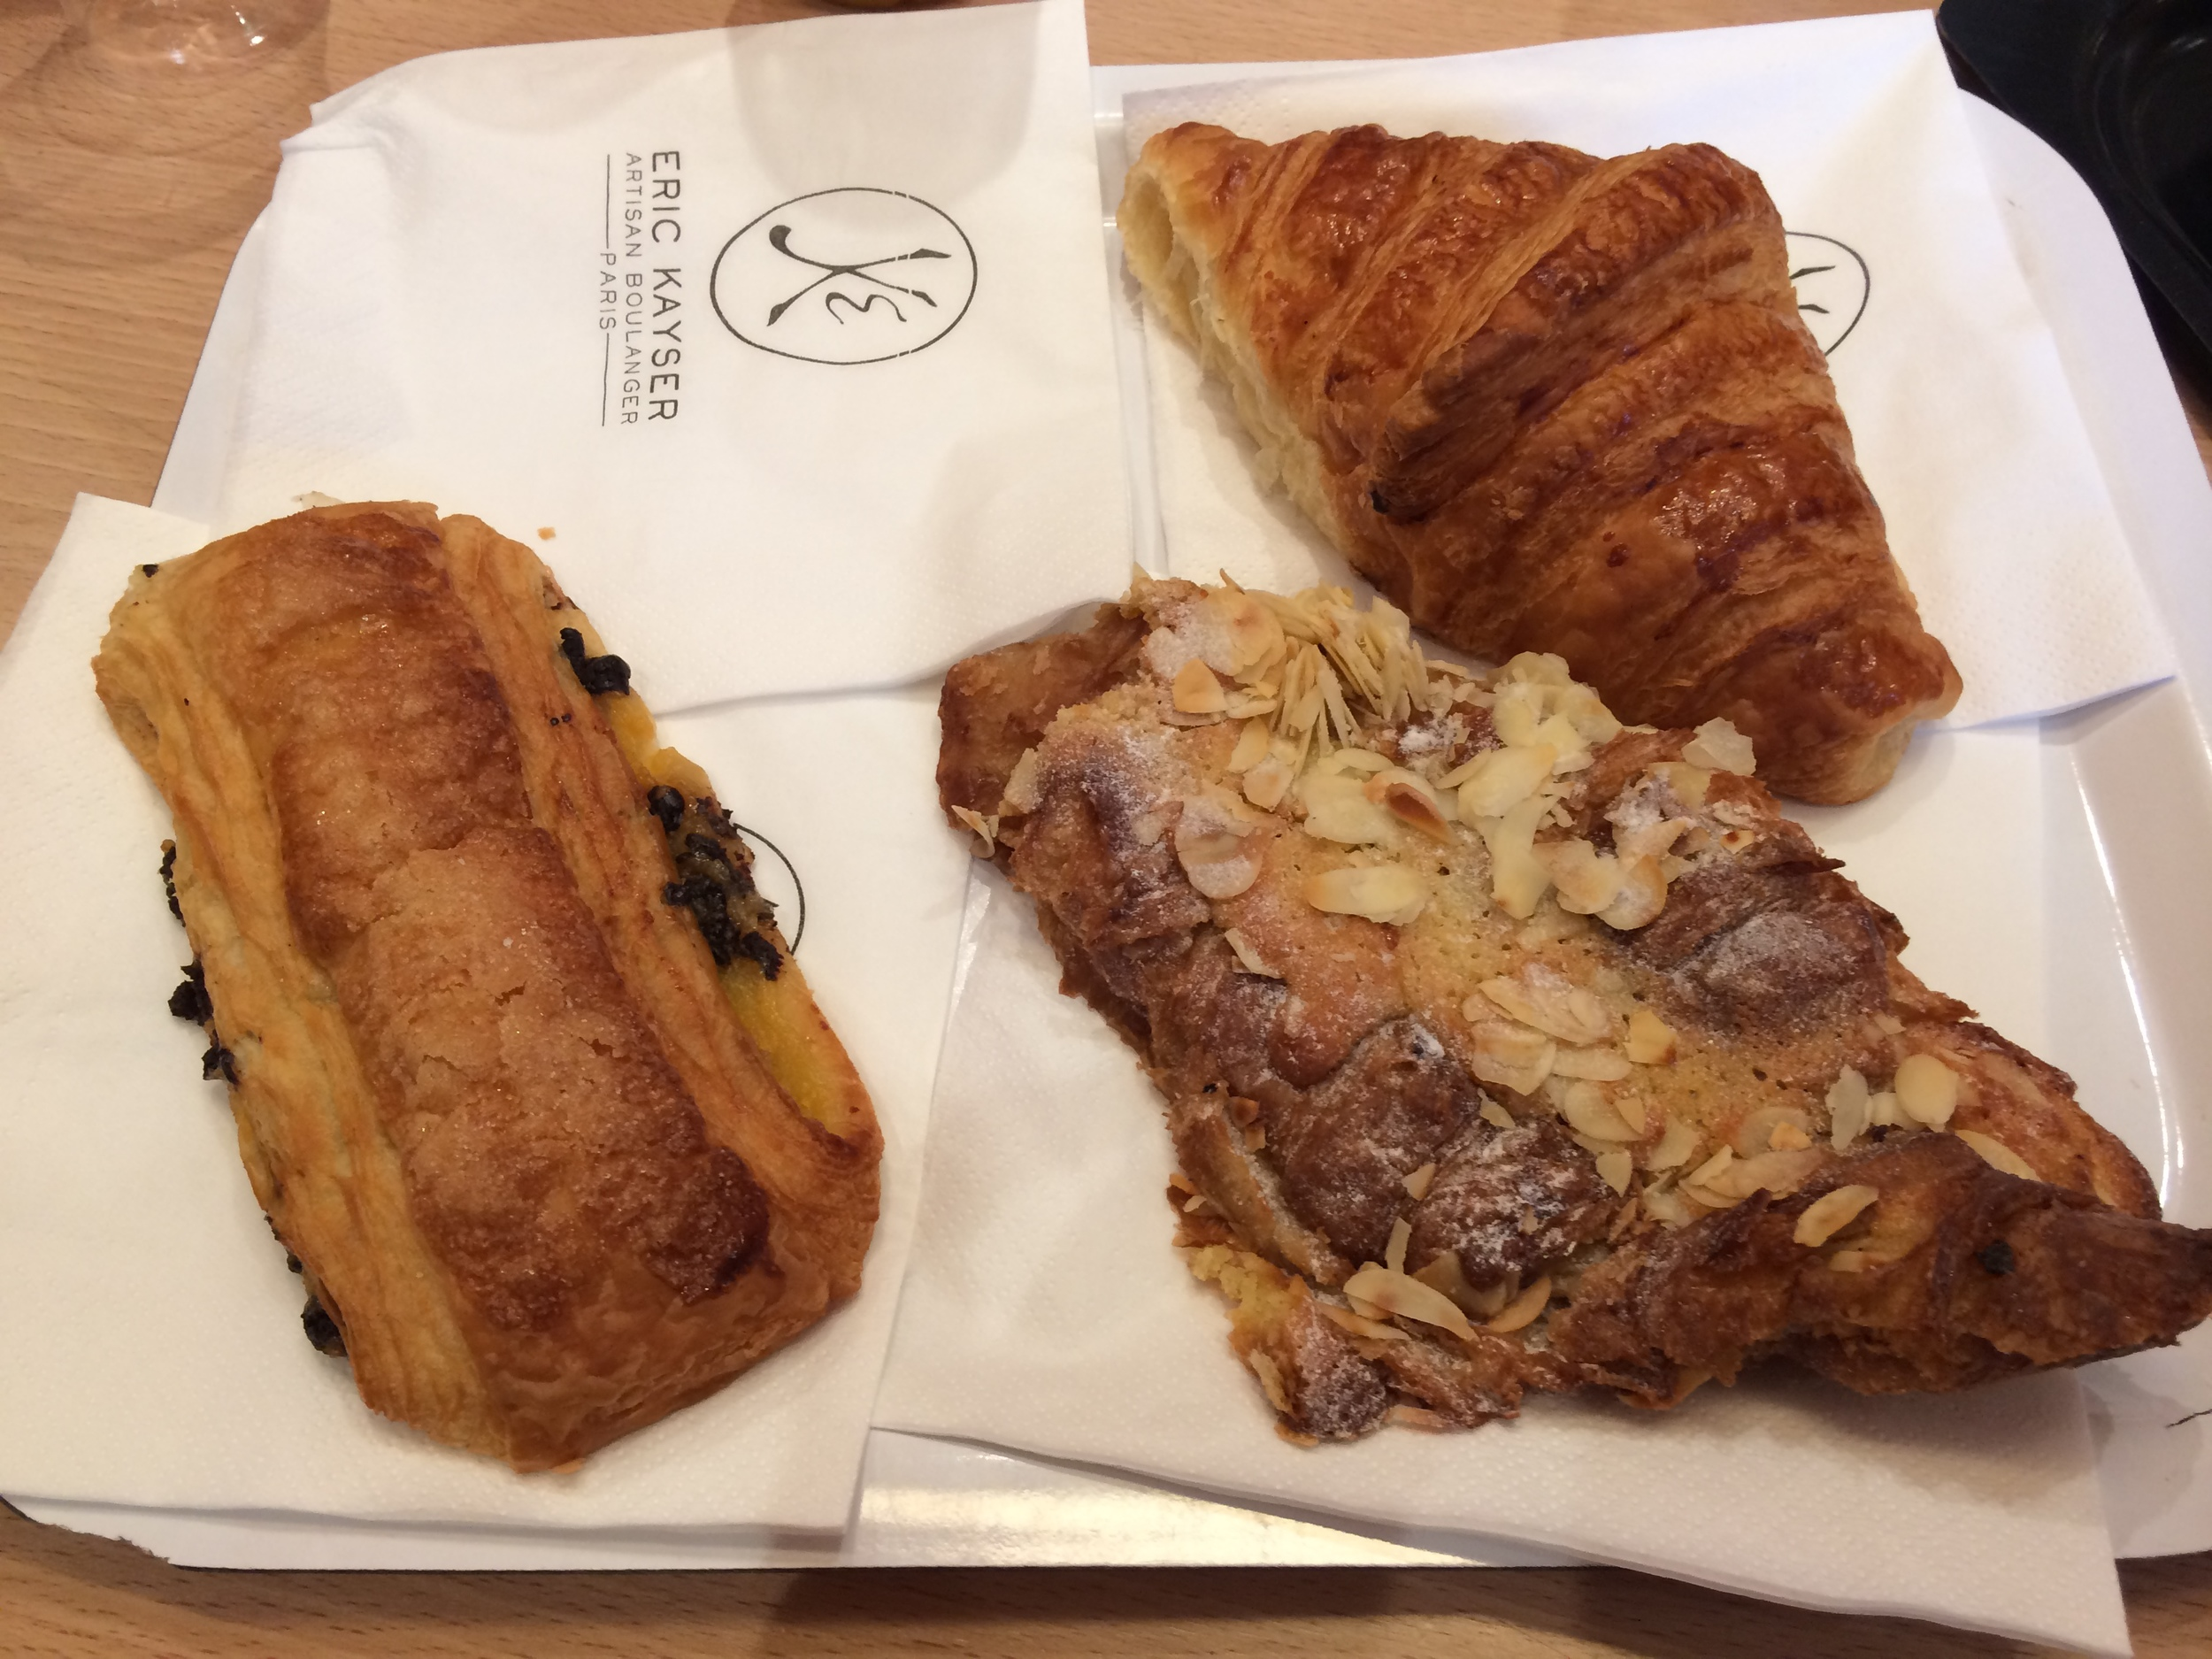 Croissant sampler, from left to right: chocolate, plain, and almond. My family and I had so much fun tasting them!